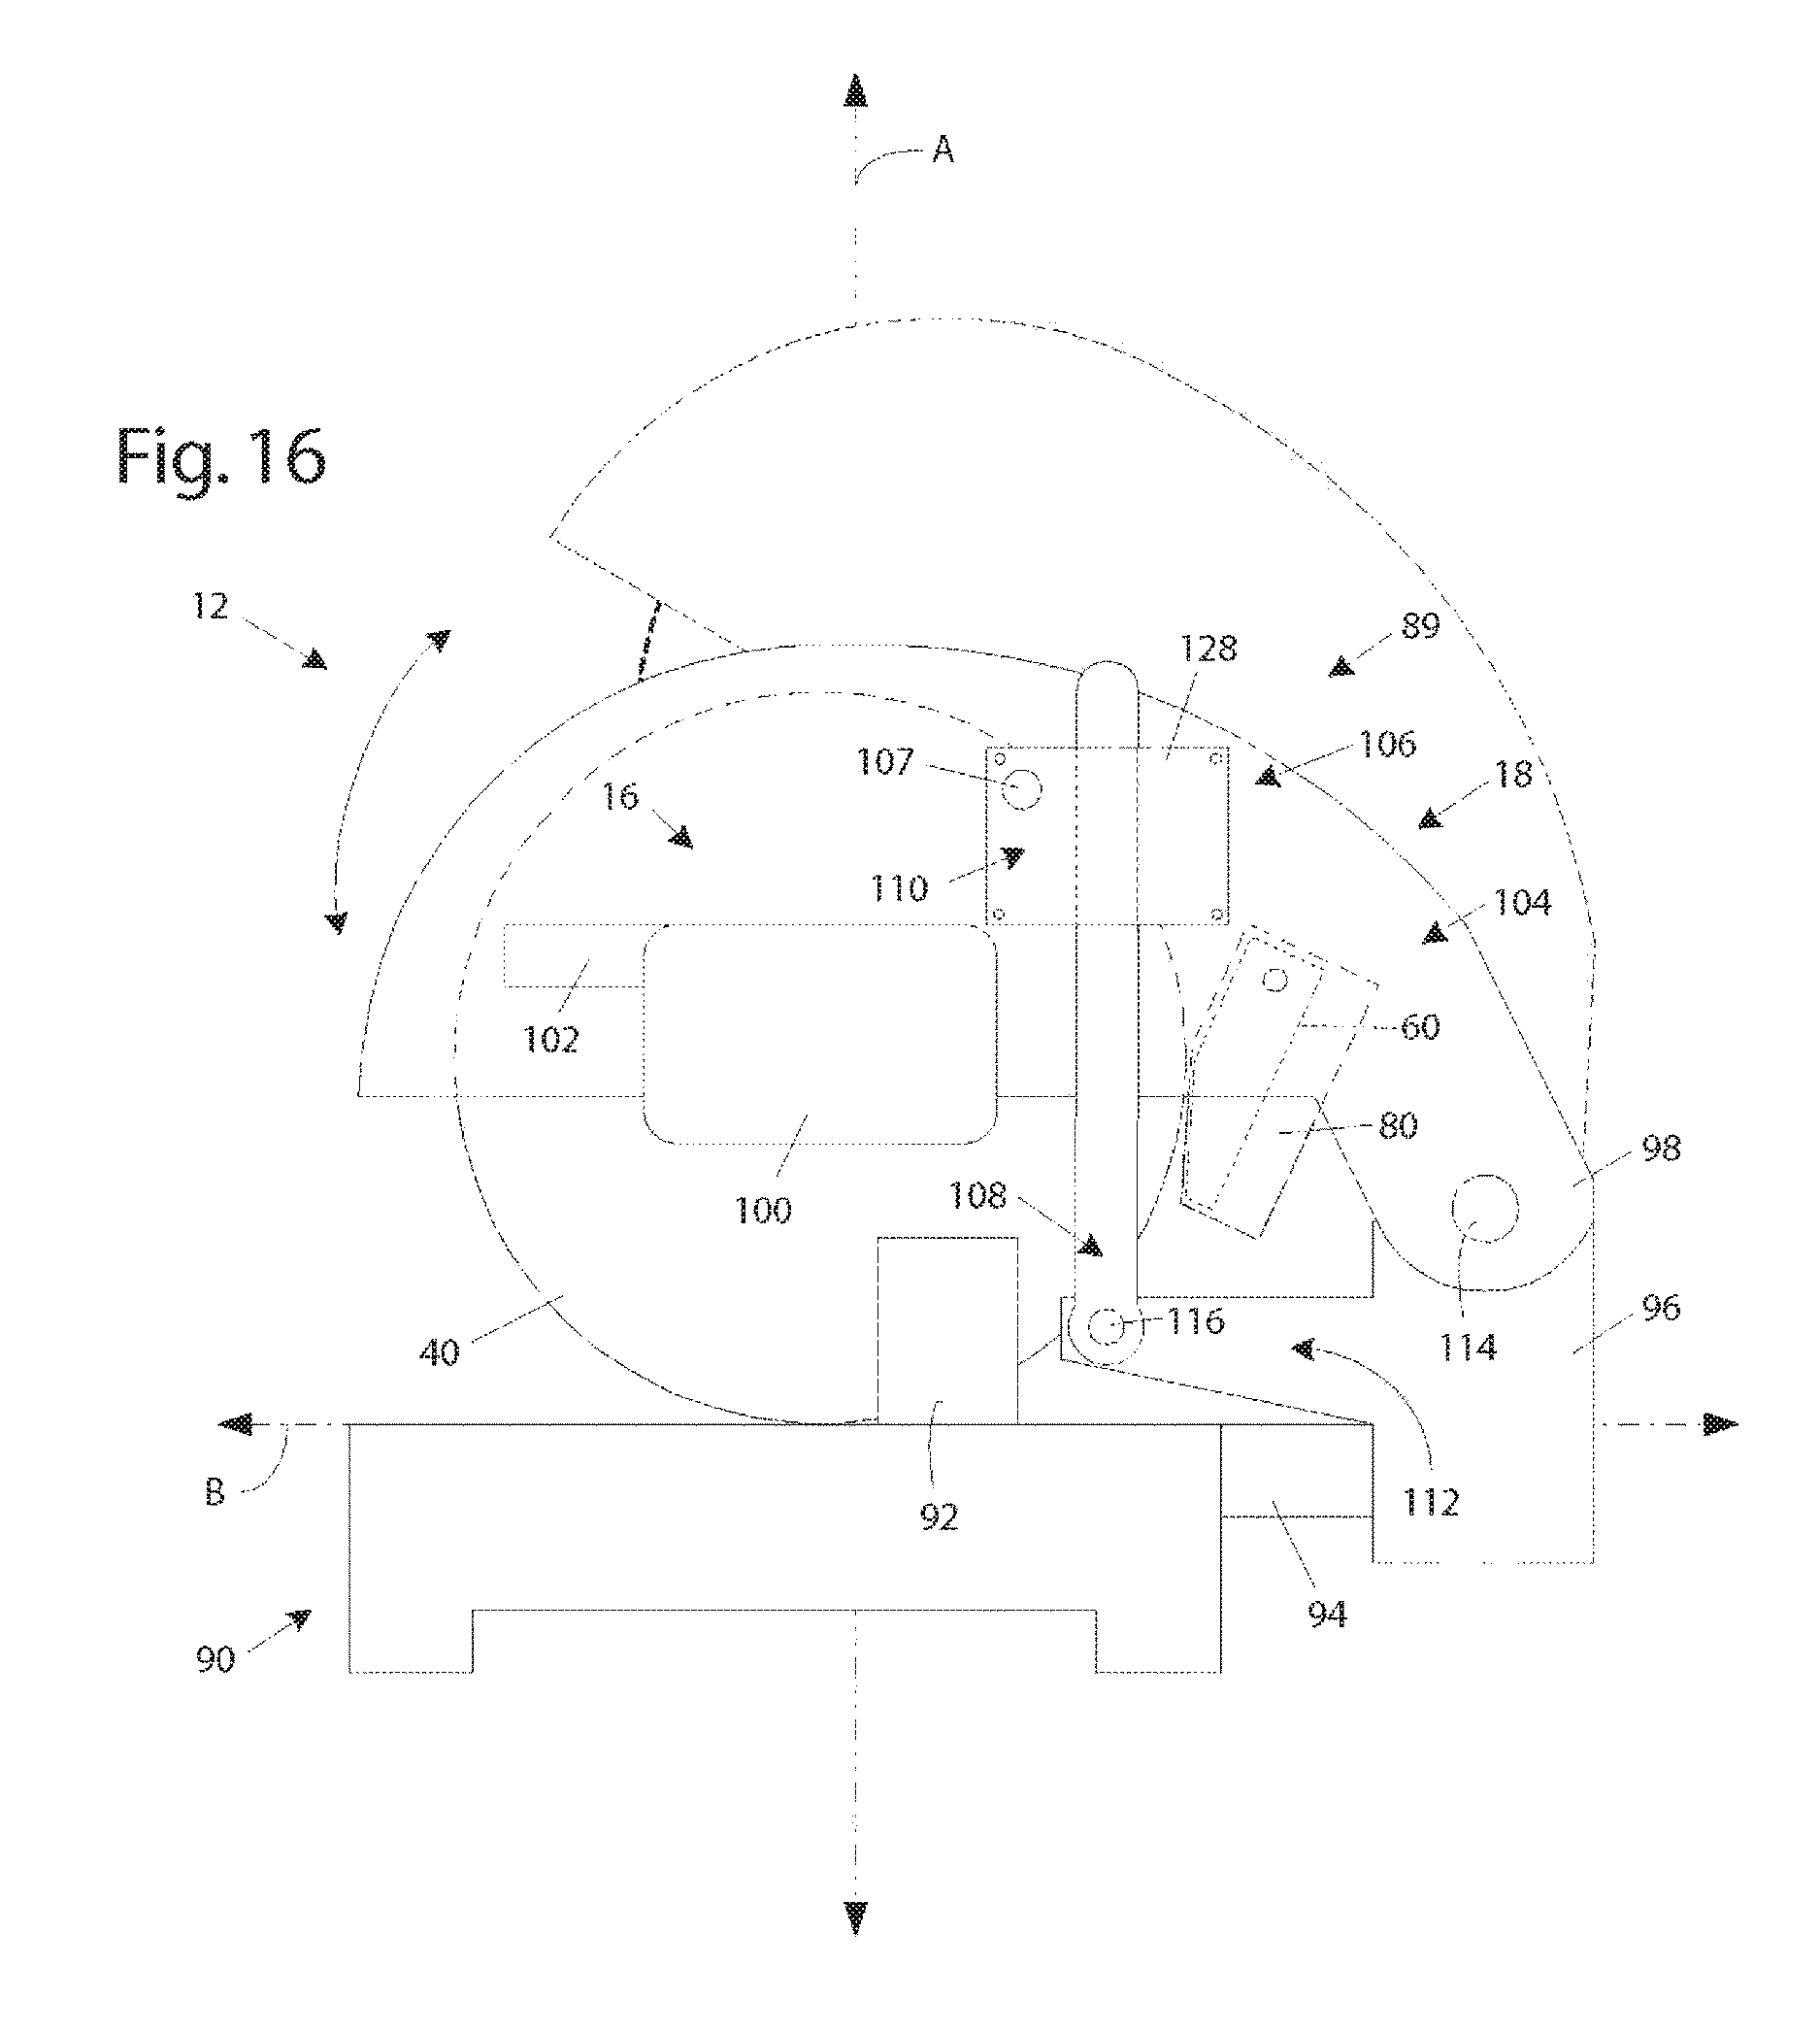 Patent US 9,969,014 B2 on